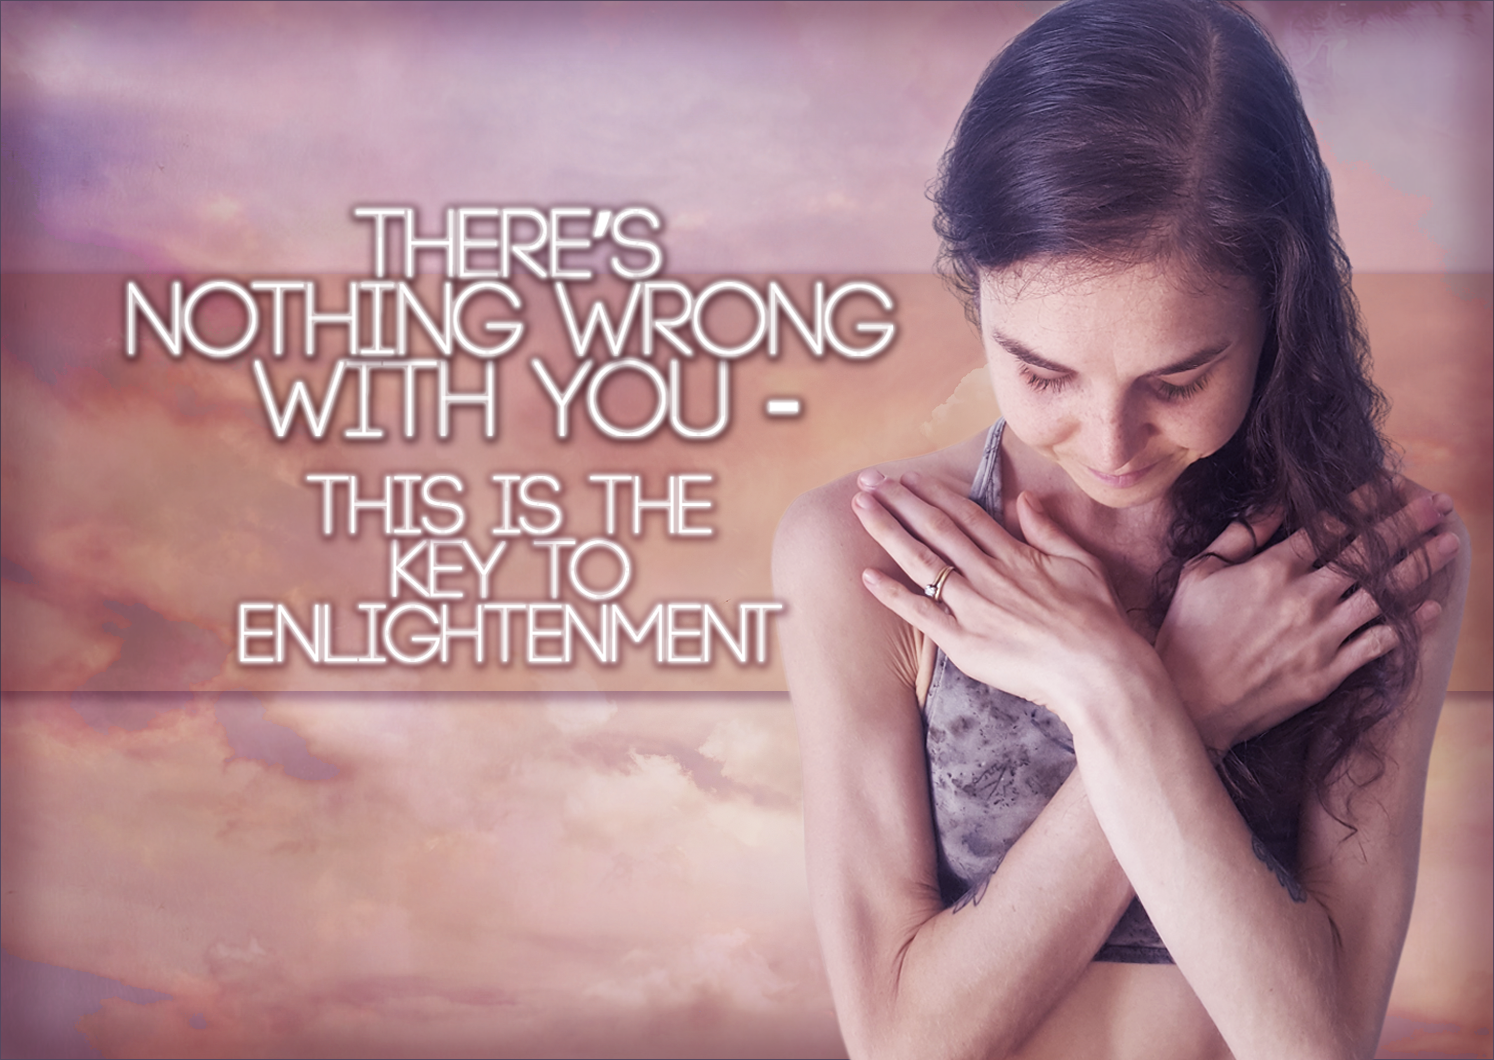 There's Nothing Wrong With You – This Is The Key To Enlightenment.